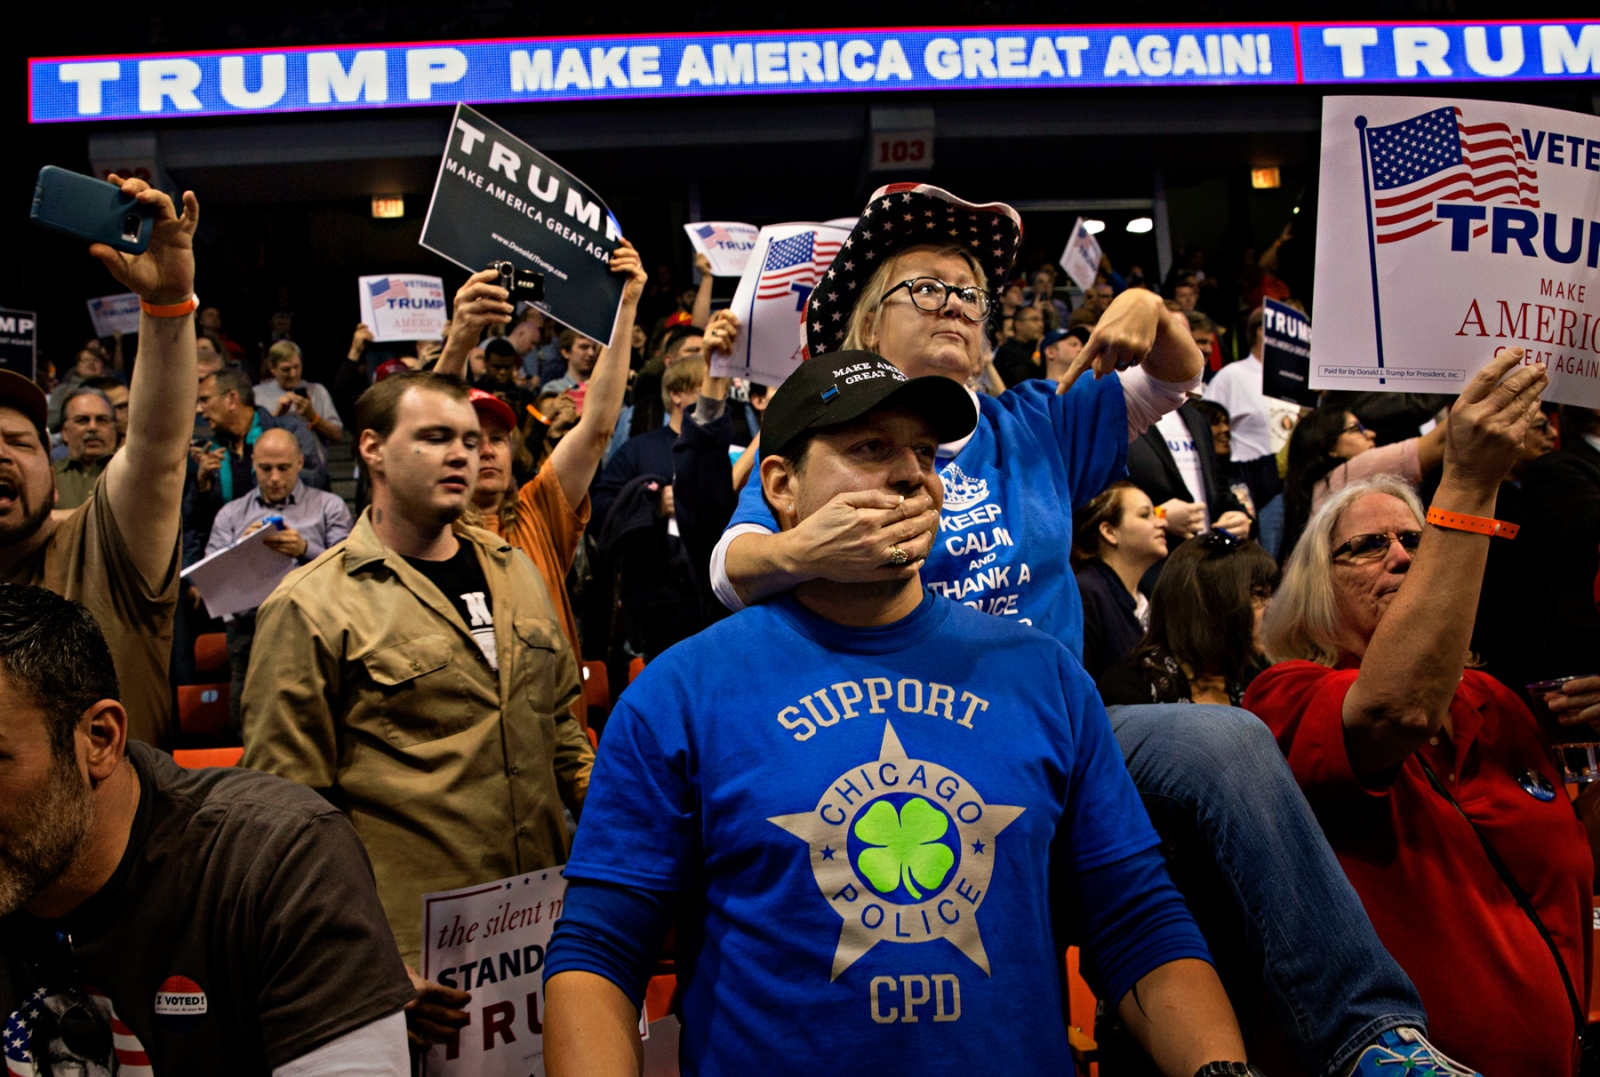 March 11, 2016 - Chicago, Illinois - A group of Chicago Police Department officers and their family attended a rally planned by Donald Trump in the University of Illinois at Chicago. Before it became apparent the UIC students along with members of Black Lives Matter organization had filled the Pavilion with their supporters, the CPD officers engaged in a verbal assault with anti-Trump protestors inside the Pavilion before the protestors were escorted out.